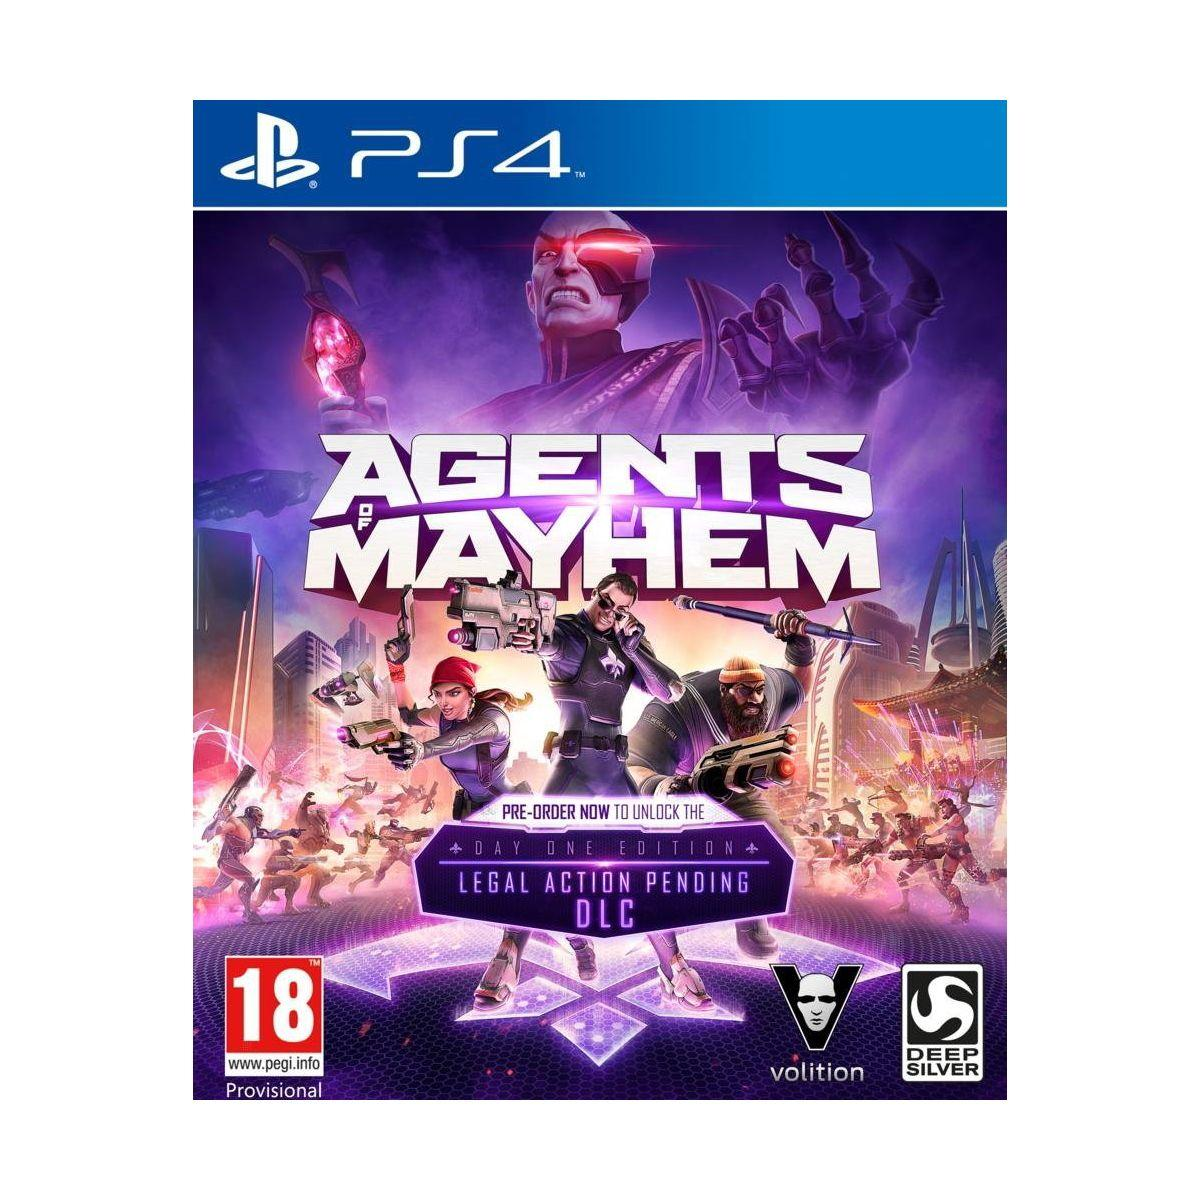 Jeu ps4 koch media agent of mayhem - 2% de remise immédiate avec le code : cool2 (photo)